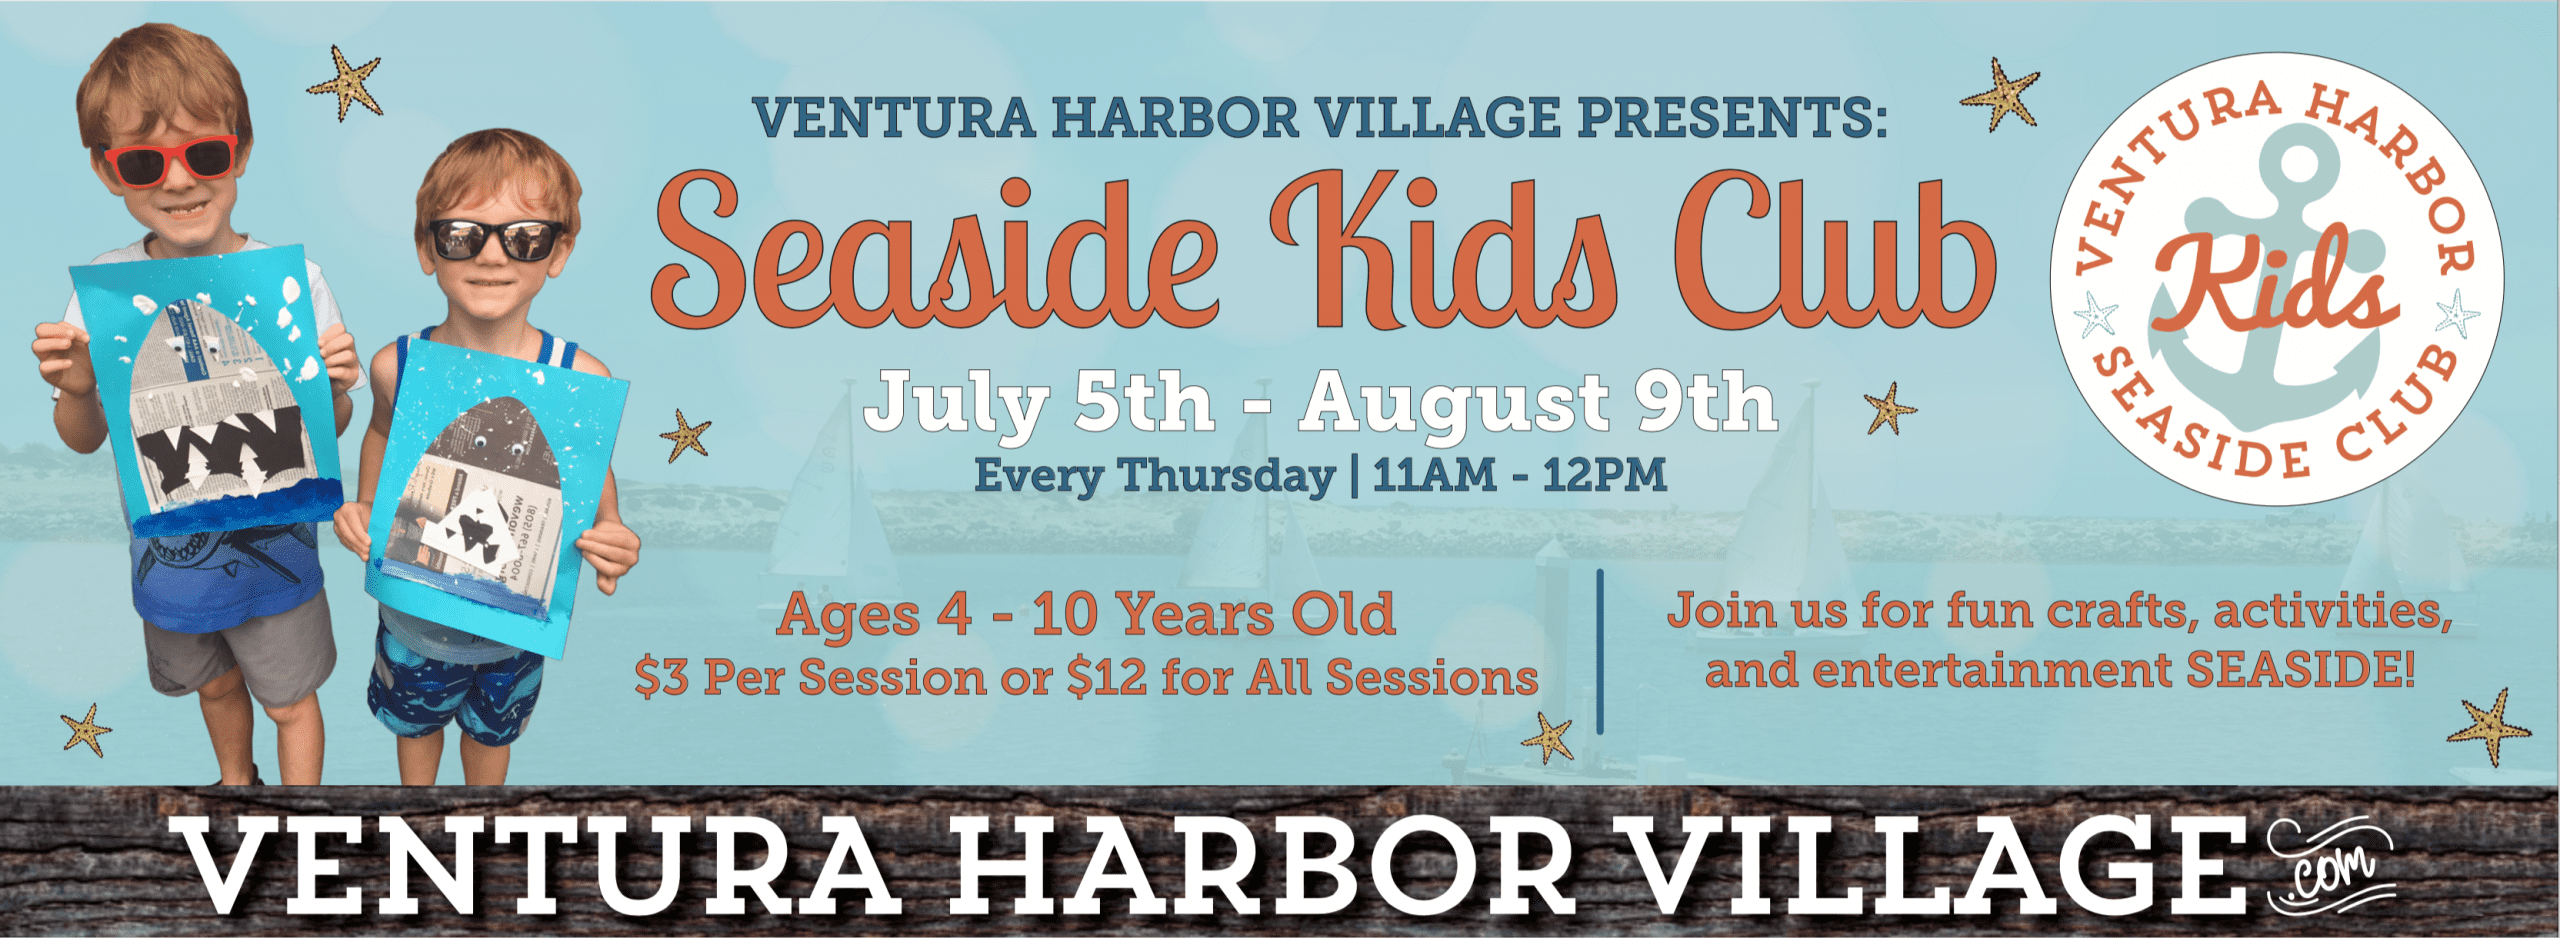 Seaside kids club returns to ventura harbor village, come experience all the seaside fun and activities on Thursdays from 11 - noon